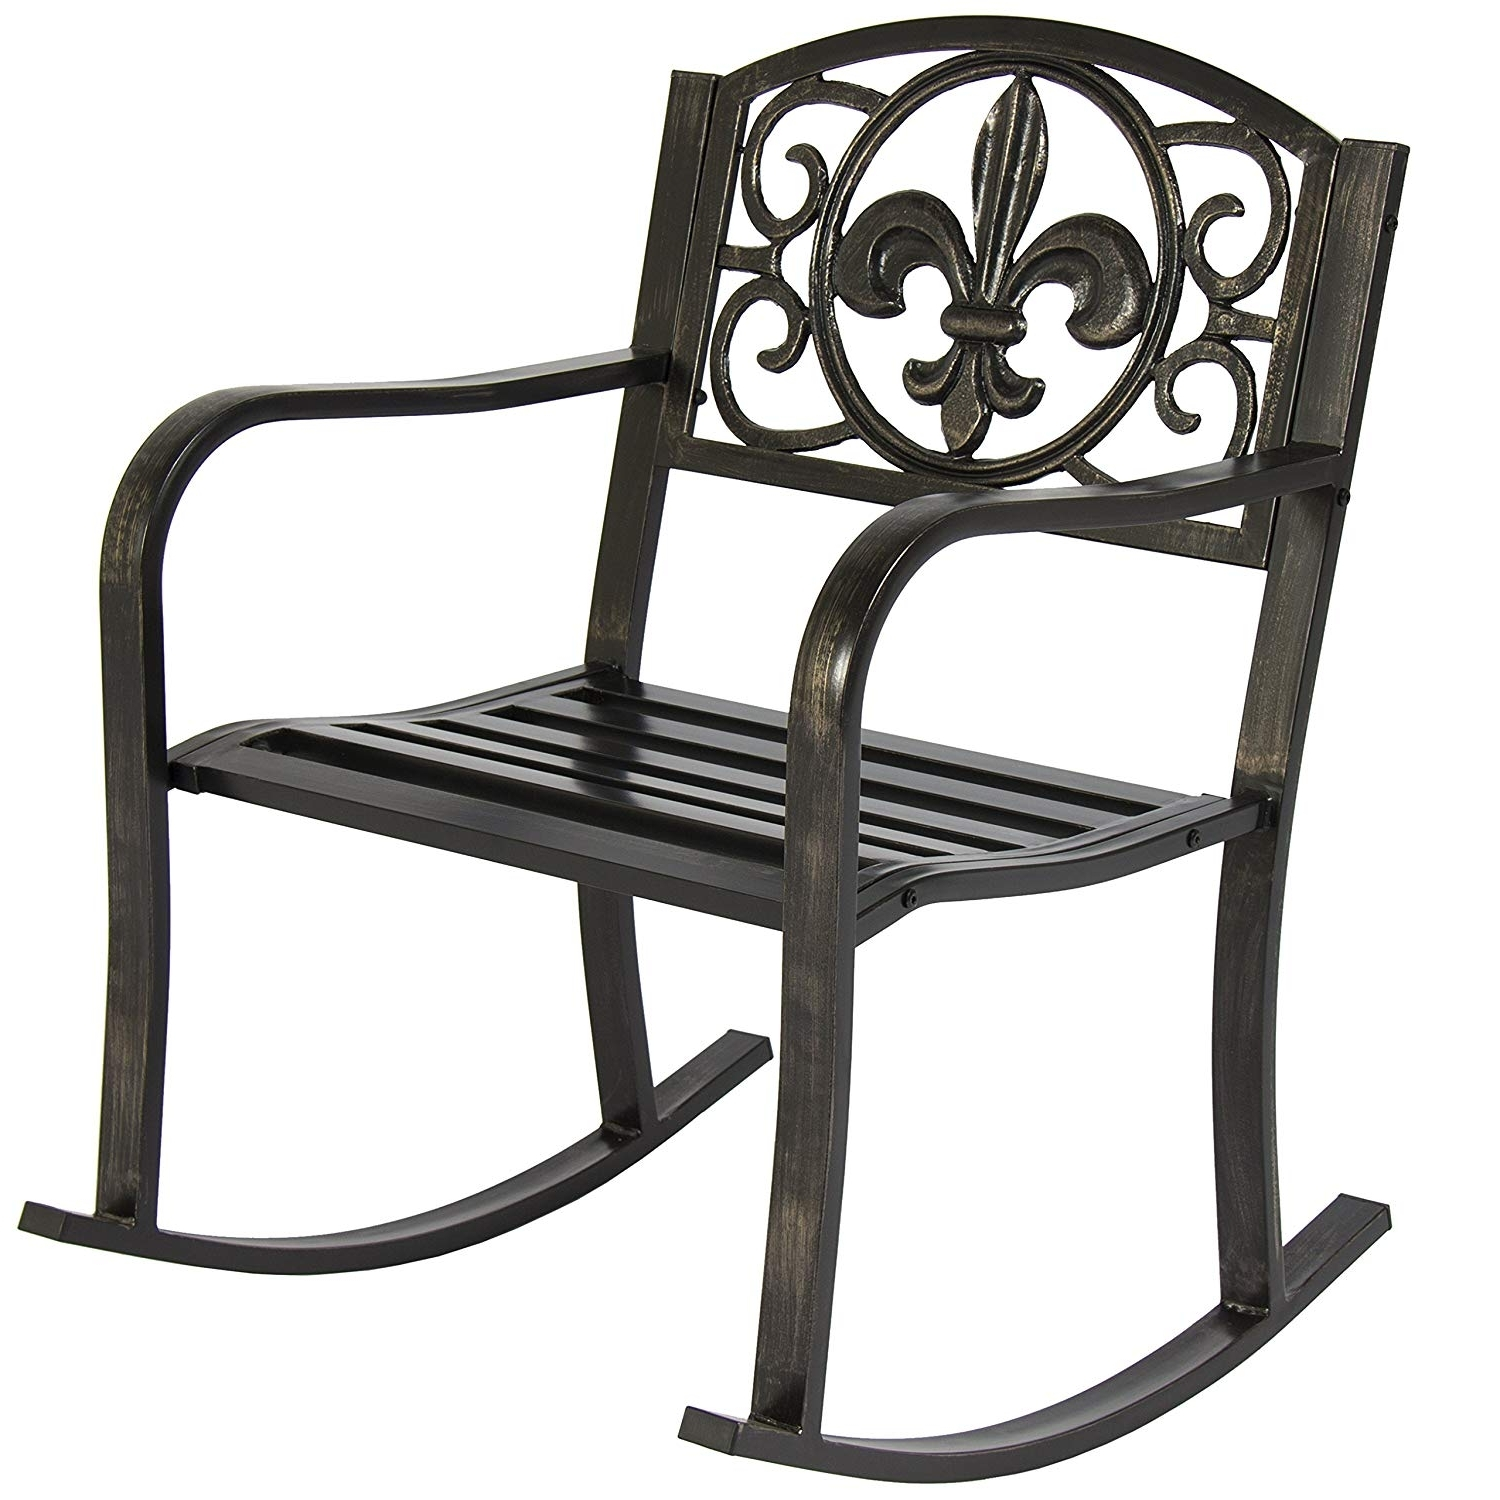 Newest Rocking Chairs For Porch For Amazon : Best Choice Products Metal Rocking Chair Seat For Patio (View 7 of 15)